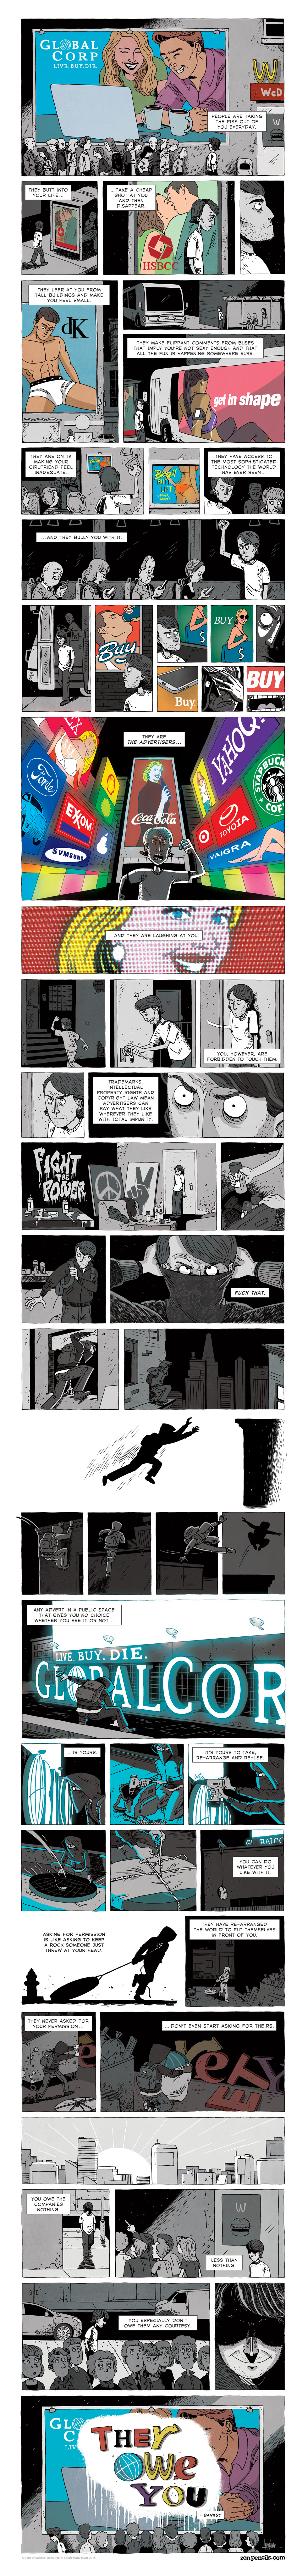 Zen Pencils - Bansky: Taking The Piss (Explicit)